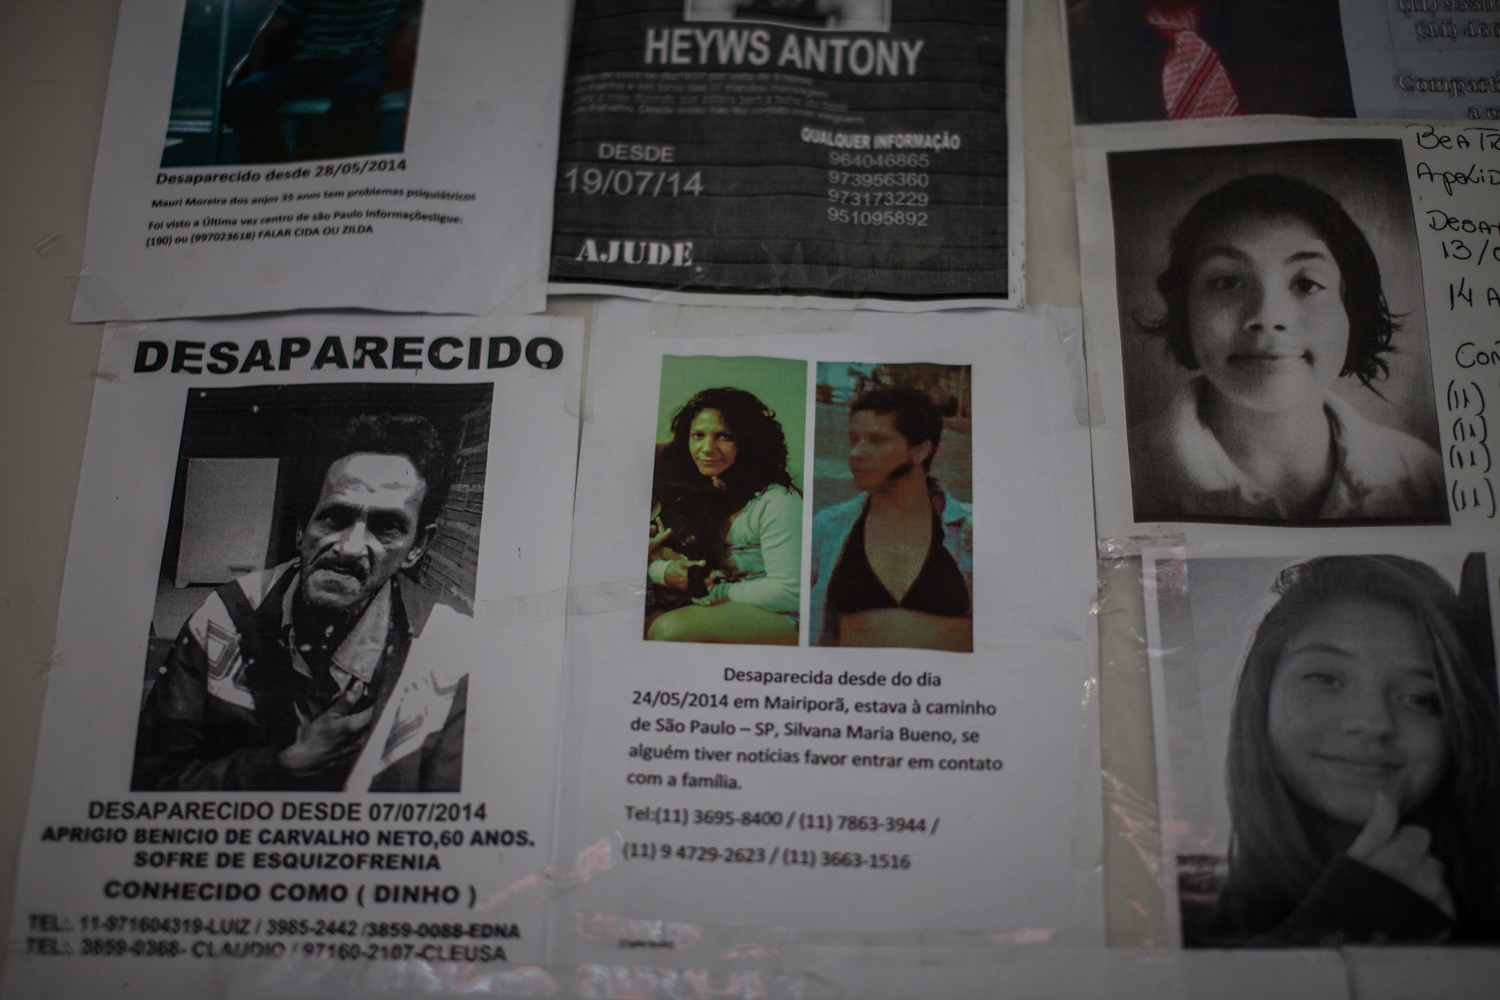 Missing people signs plague Cracôlandia. When any relatives go missing in other parts of the state of São Paulo, their family members come here looking for them. There are other Cracôlandias in Brazil, but São Paulo's is the most notorious.